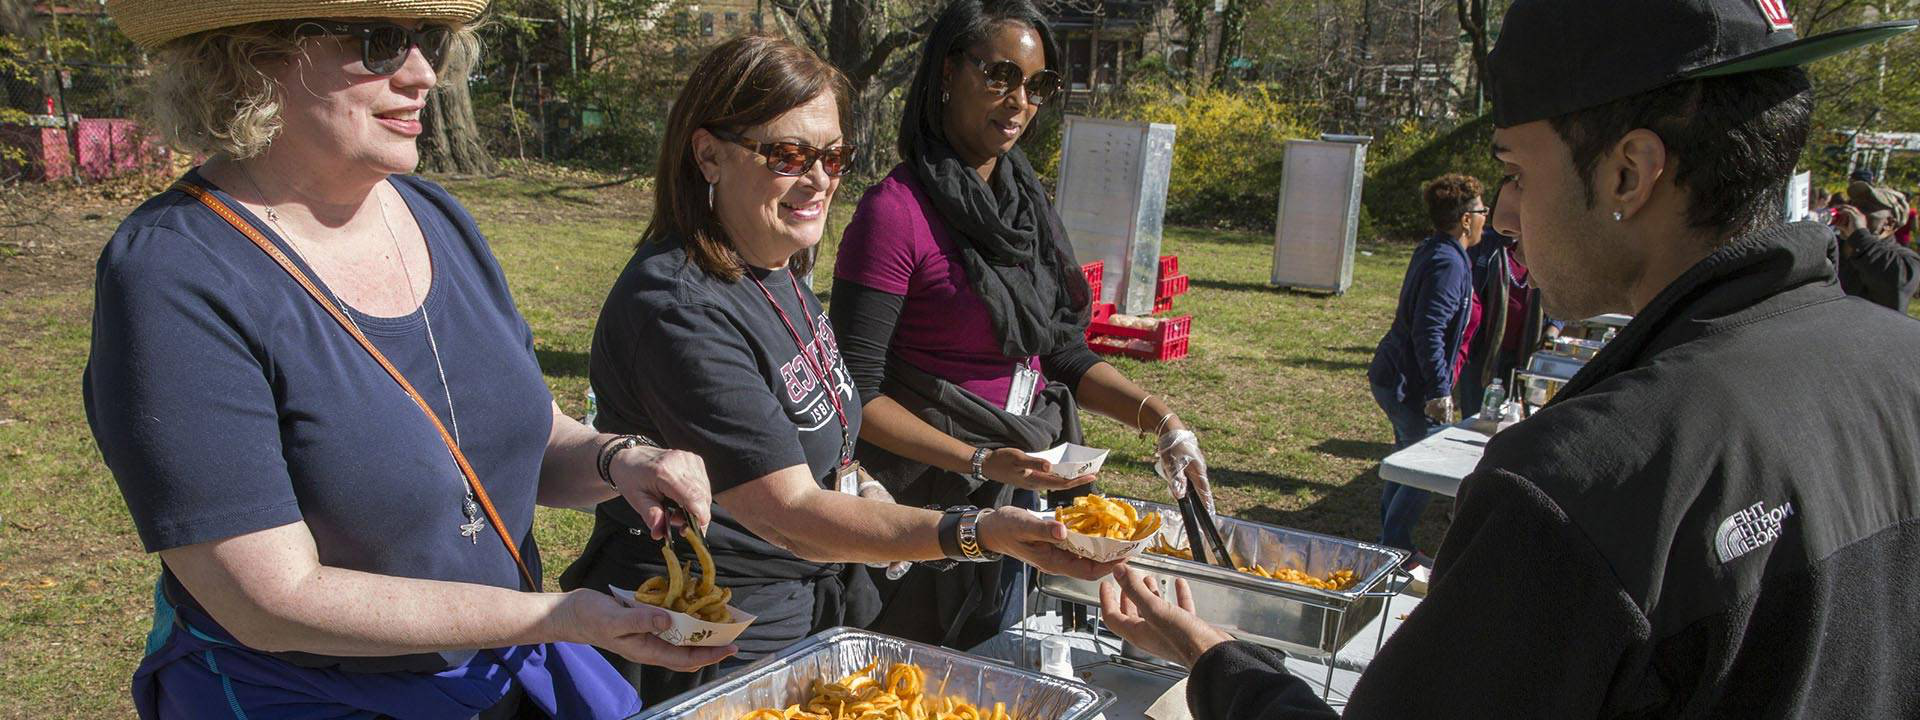 Food being served at an outdoor event